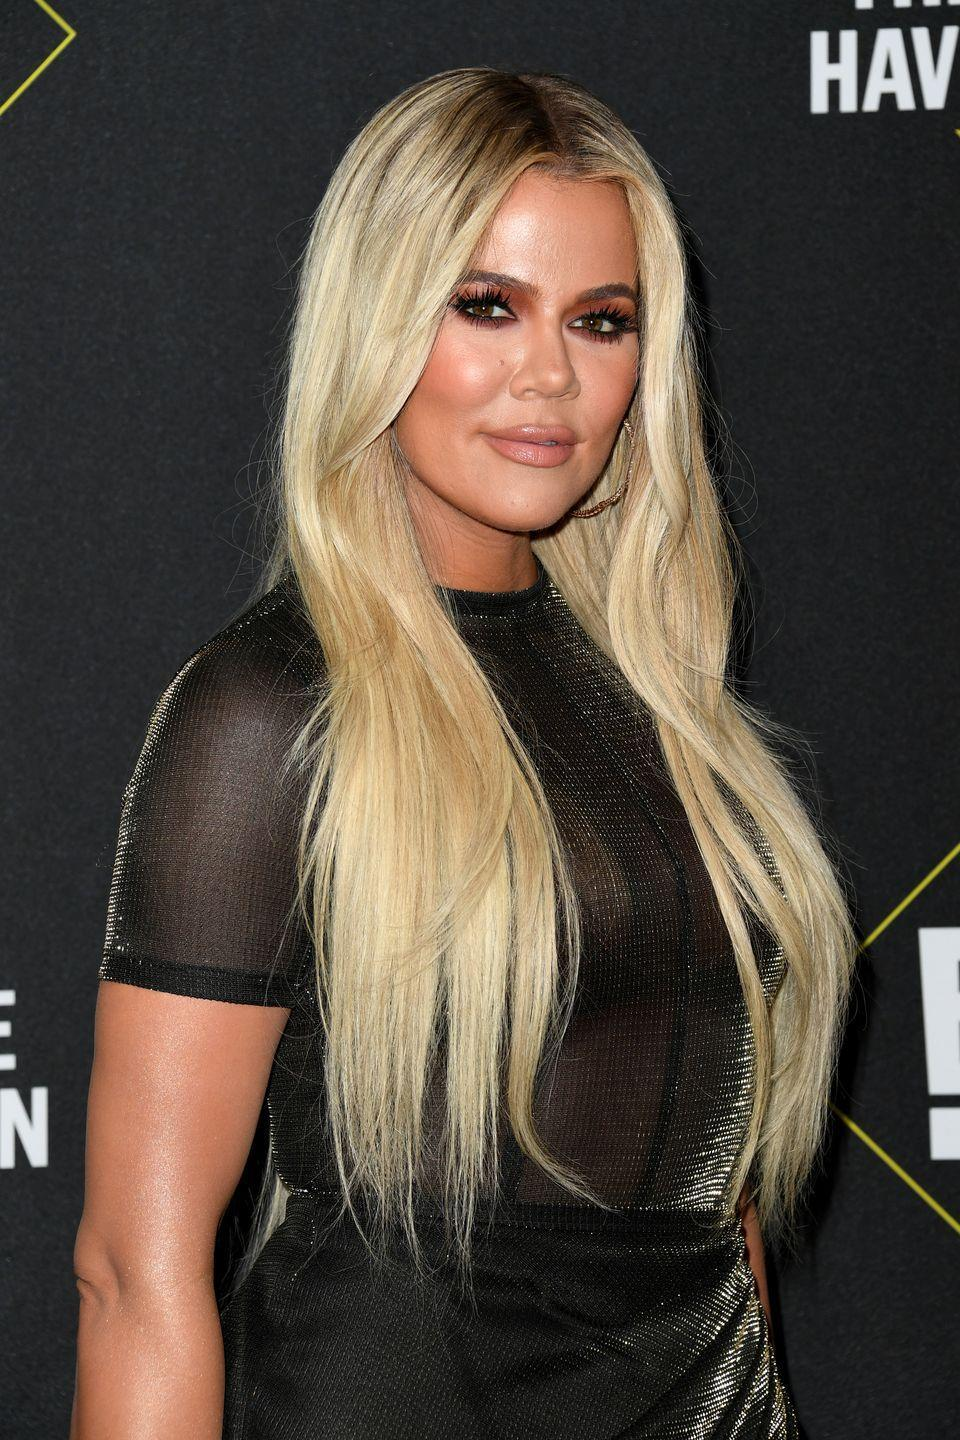 """<p>When it comes to the next generation of Kardashian-Jenners, there are still a lot of questions about what that will look like. For Khloé, she isn't going to let True watch the reality show until she's <a href=""""https://www.marieclaire.com/celebrity/a19091649/khloe-kardashian-daughter-watch-kuwtk-13/"""" rel=""""nofollow noopener"""" target=""""_blank"""" data-ylk=""""slk:at least 13 years old"""" class=""""link rapid-noclick-resp"""">at least 13 years old</a>.</p>"""